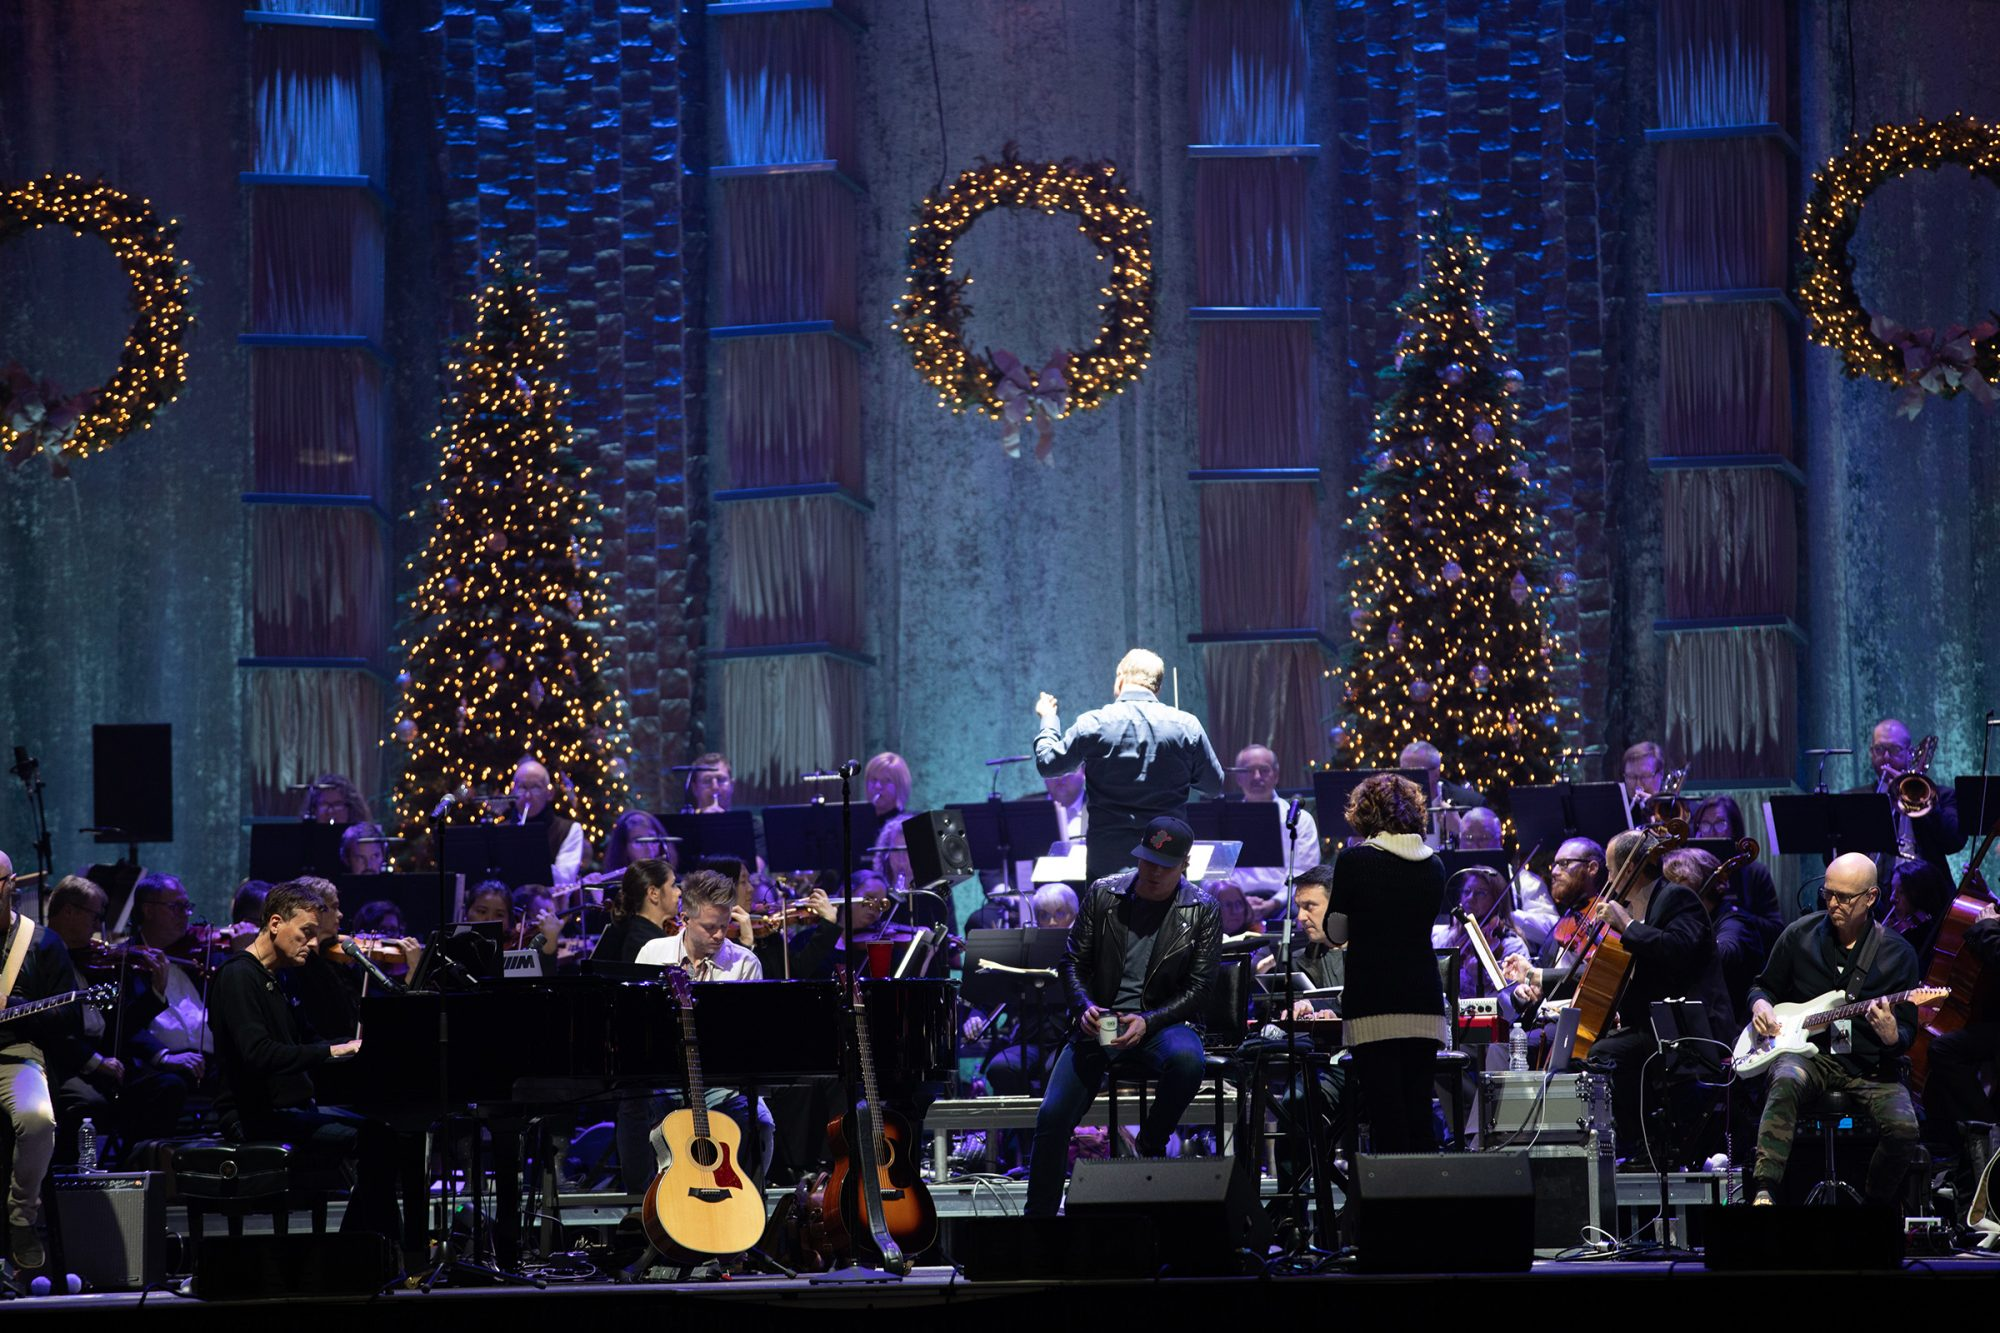 Amy Grant and Michael W. Smith Christmas Tour Photo Diary